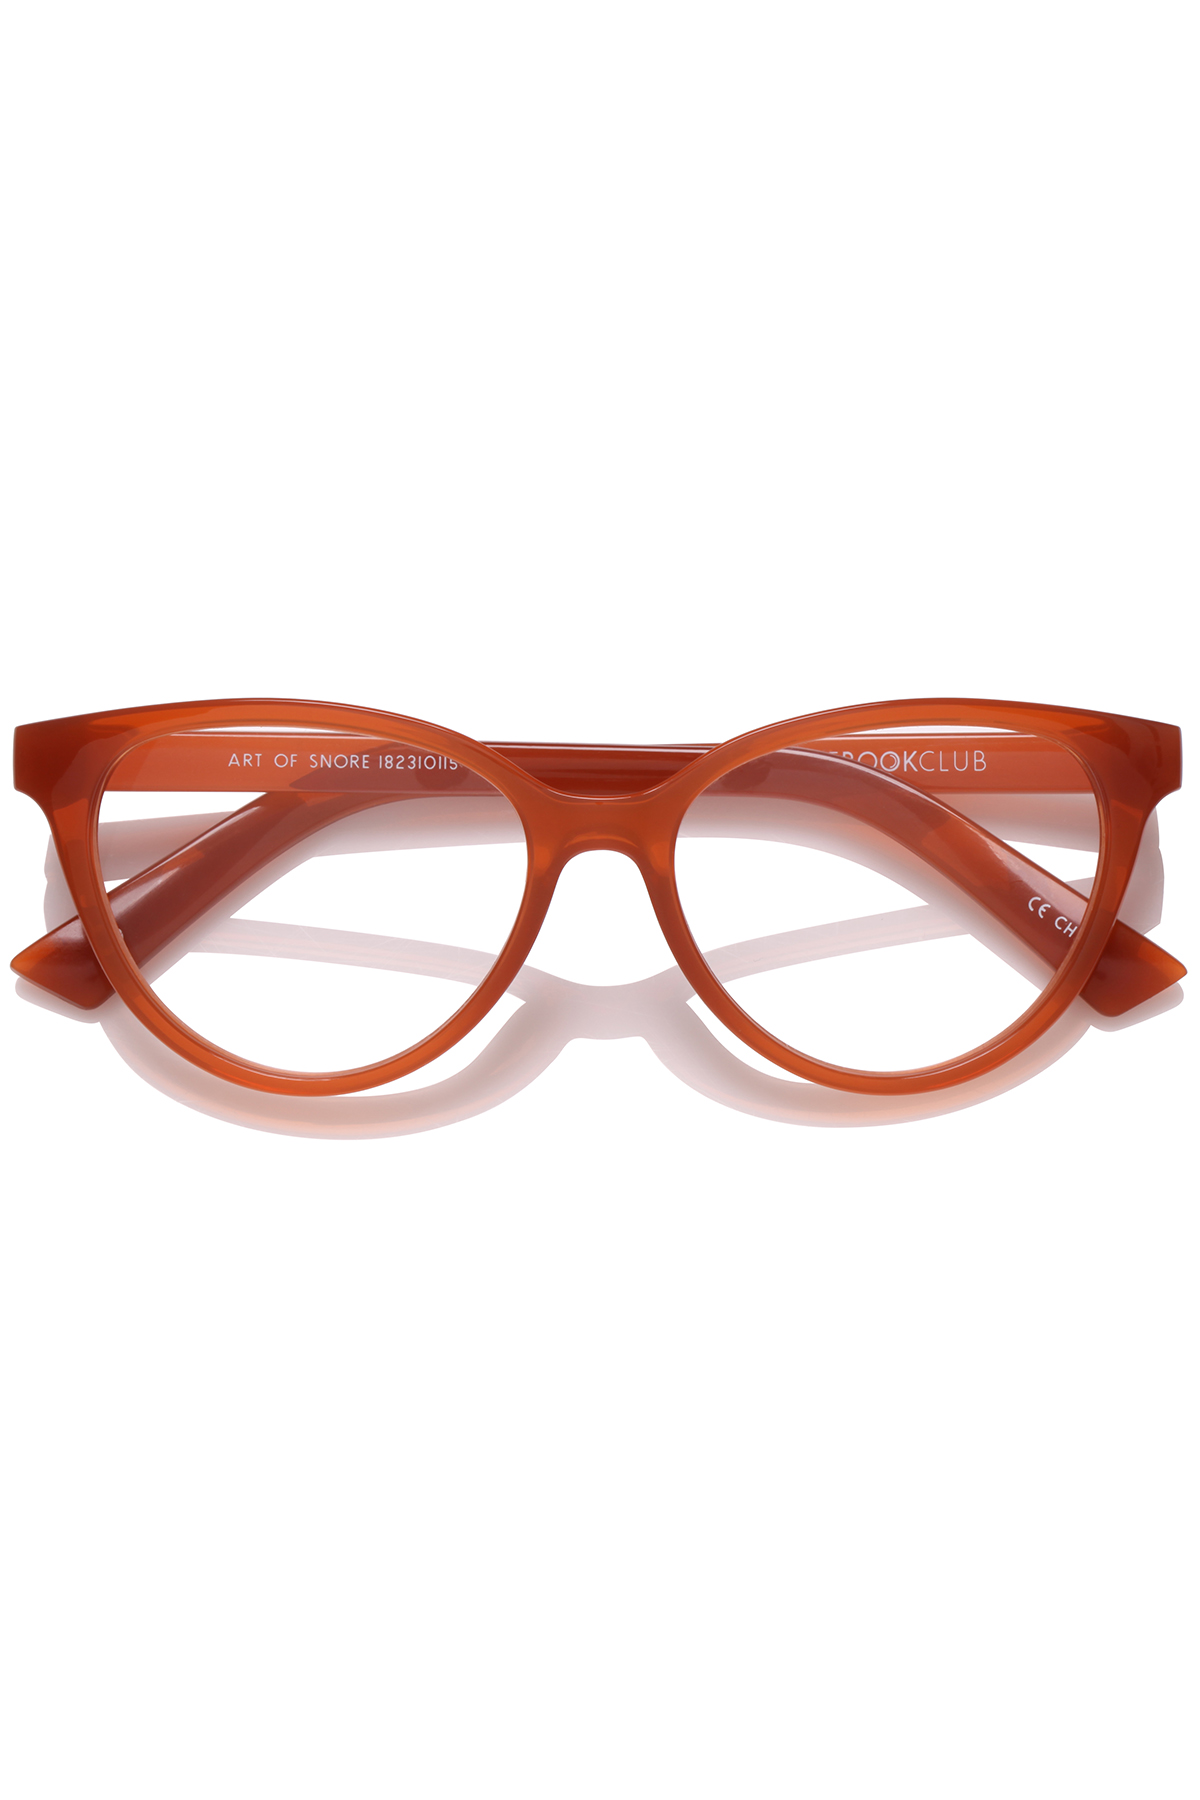 The Art of Snore Reading Glasses (+2.5 Strength) - Saffron 2